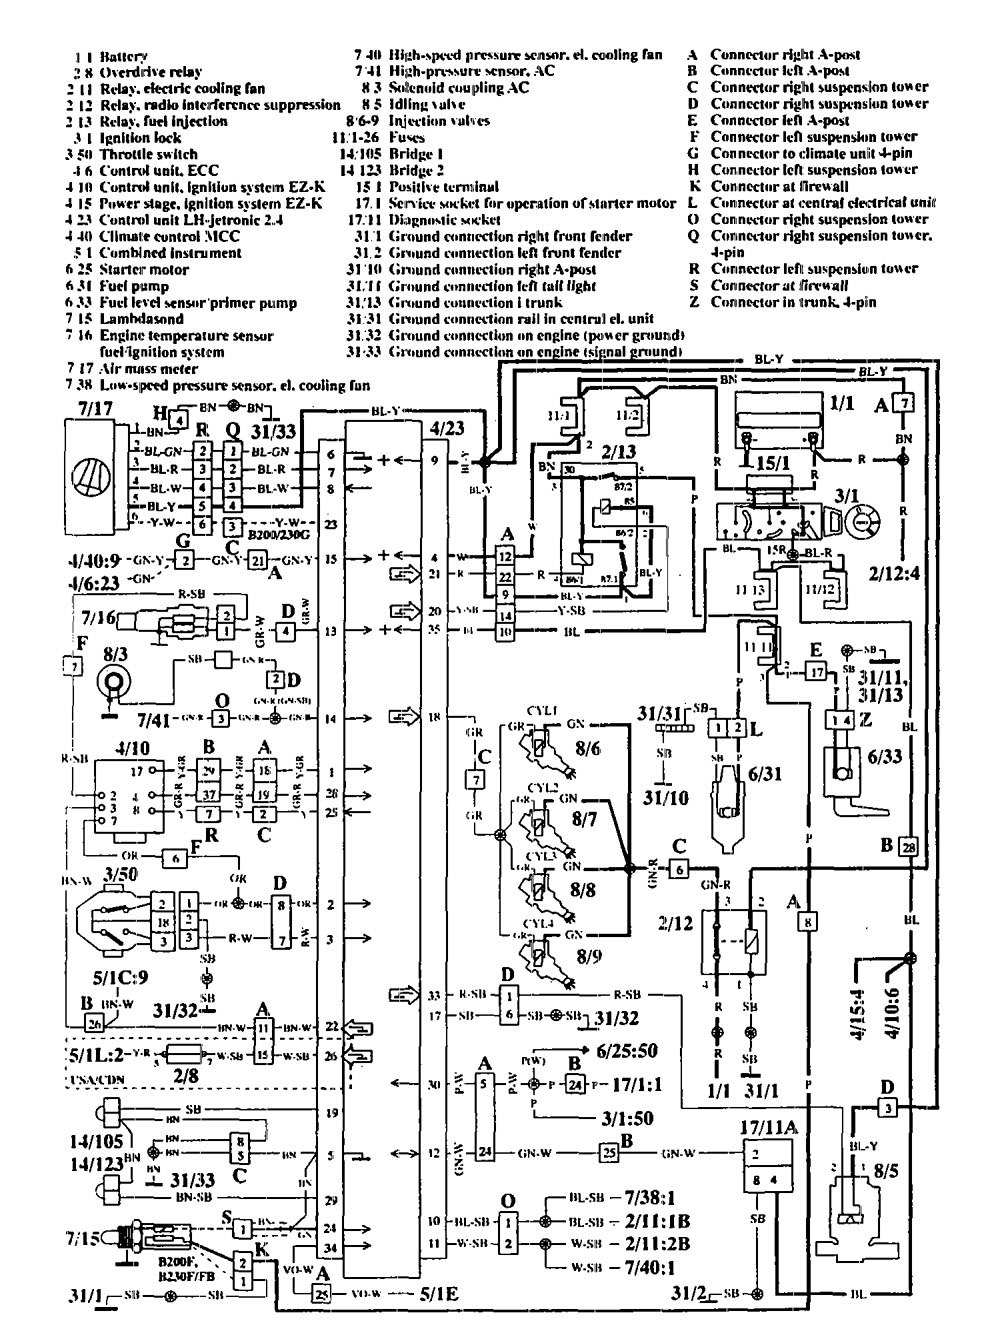 Skoda Start Wiring Diagram : Skoda roomster wiring diagram images